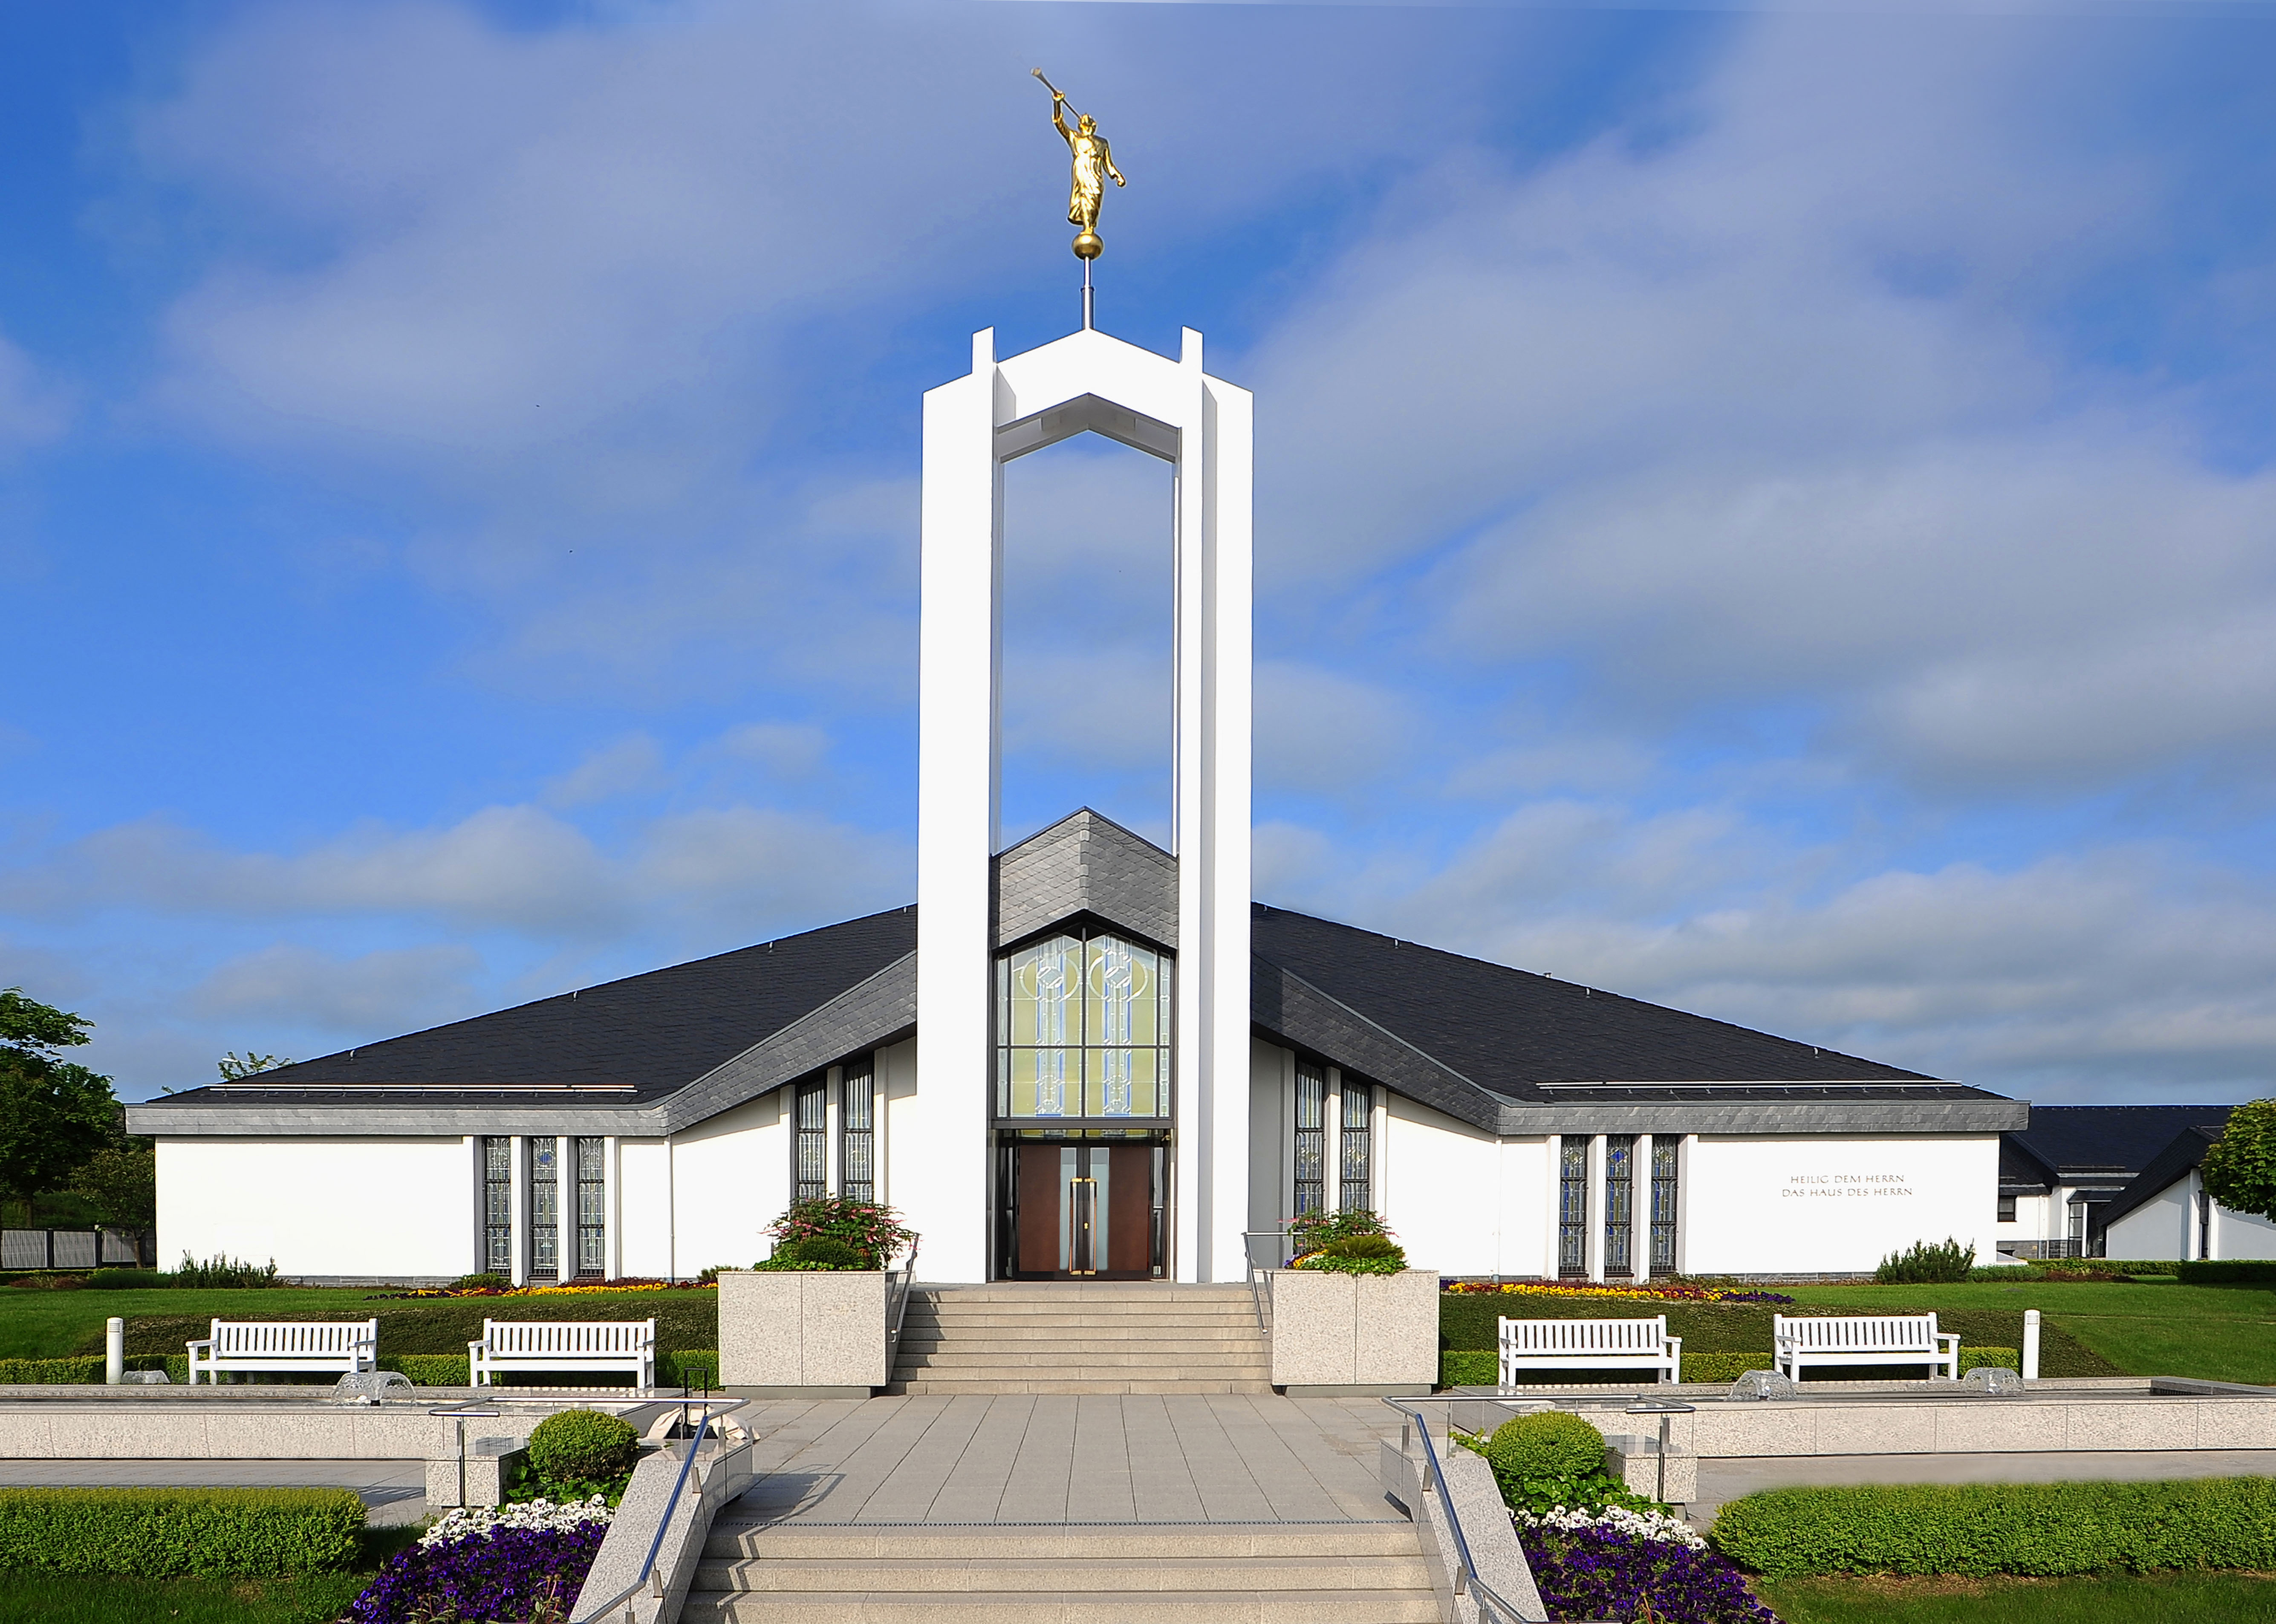 4 LDS temples to be dedicated, renovated in 2015 - The Daily